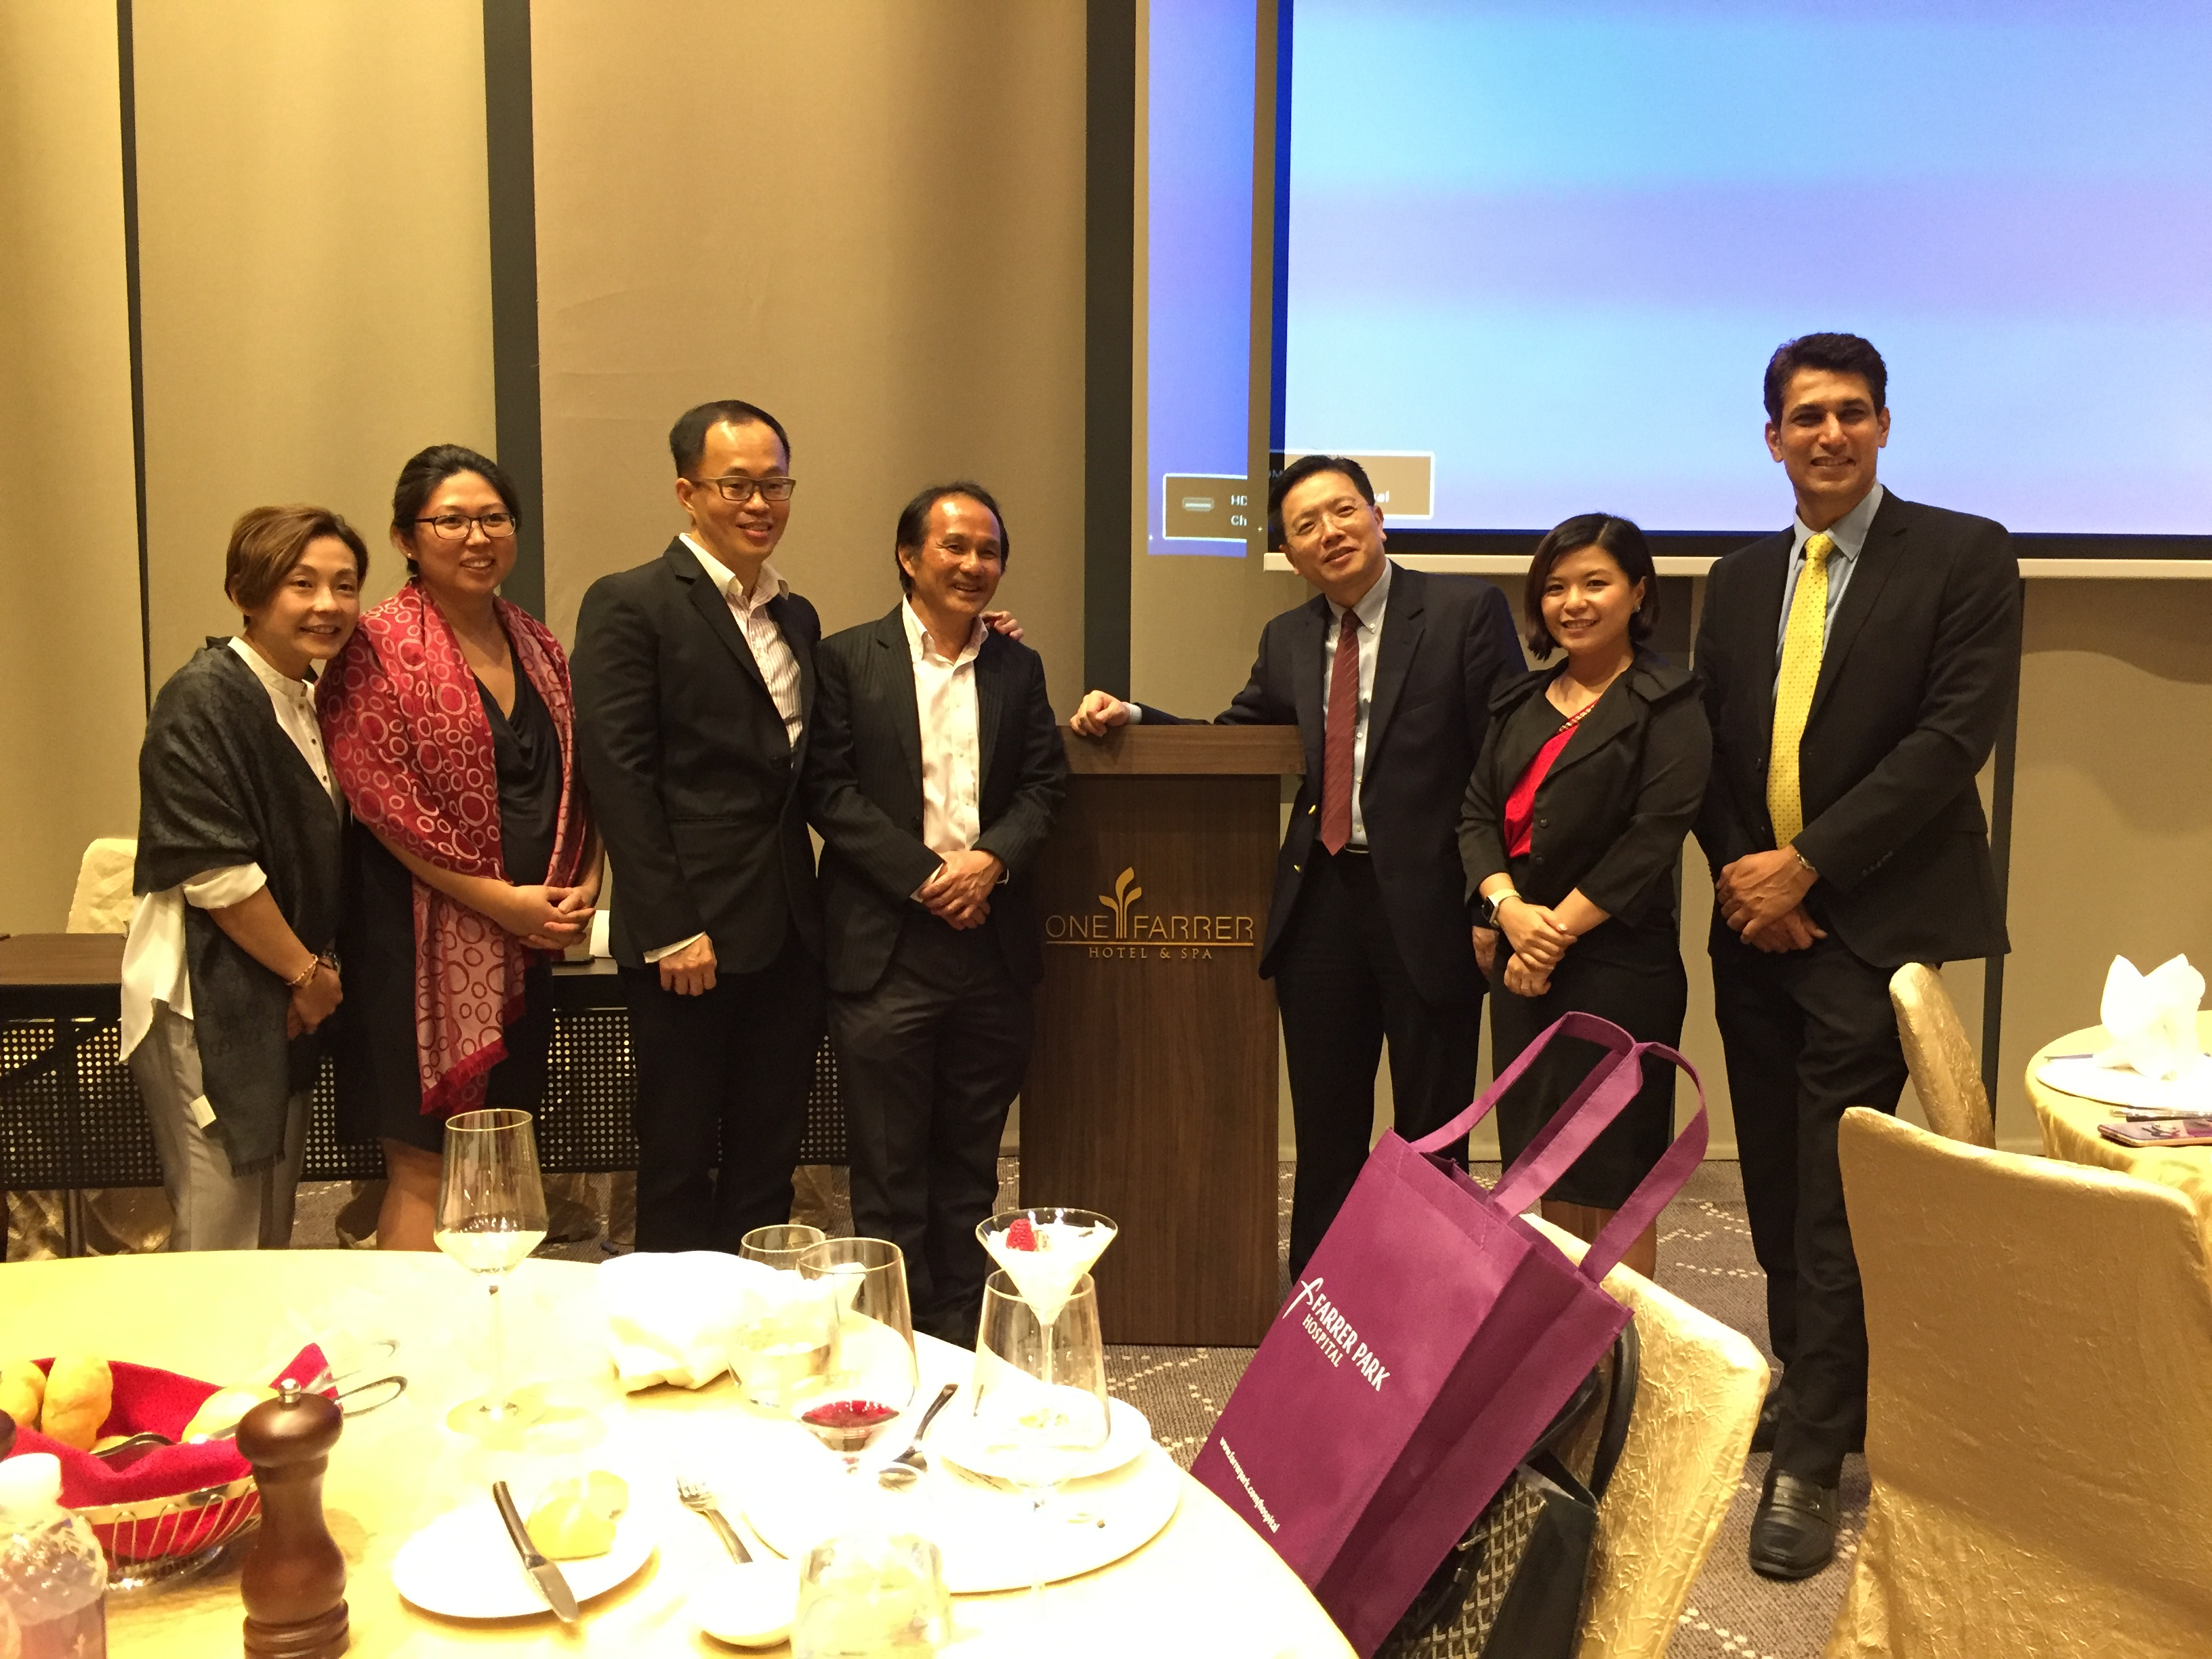 "(L-R) Ms Jil Teo, Ms Dawn Leow, Dr Bobby Cheng, Dr Chua Ee Chek, Dr Au Eong Kah Guan, Ms Tan Pei Xian and Mr Manish Soni at the symposium on ""Advances in Computer-assisted Cataract Surgery"" at One Farrer Hotel & Spa on 2 August 2017."